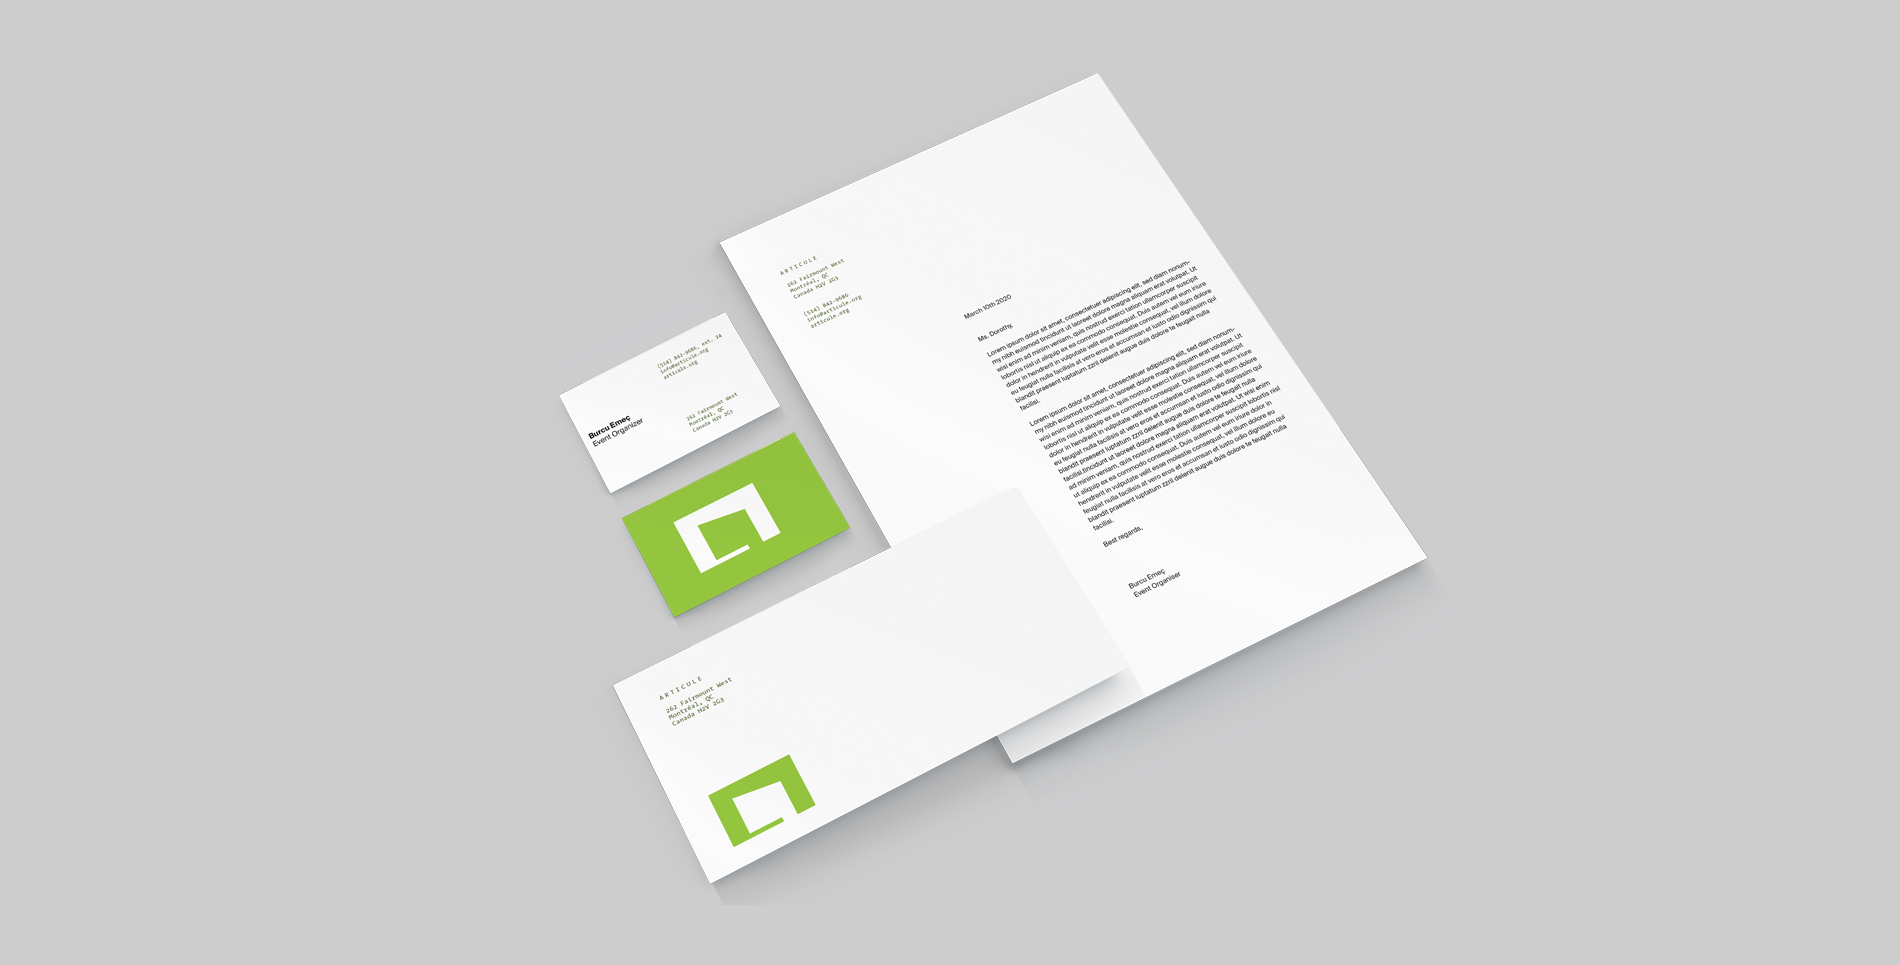 Articule stationery